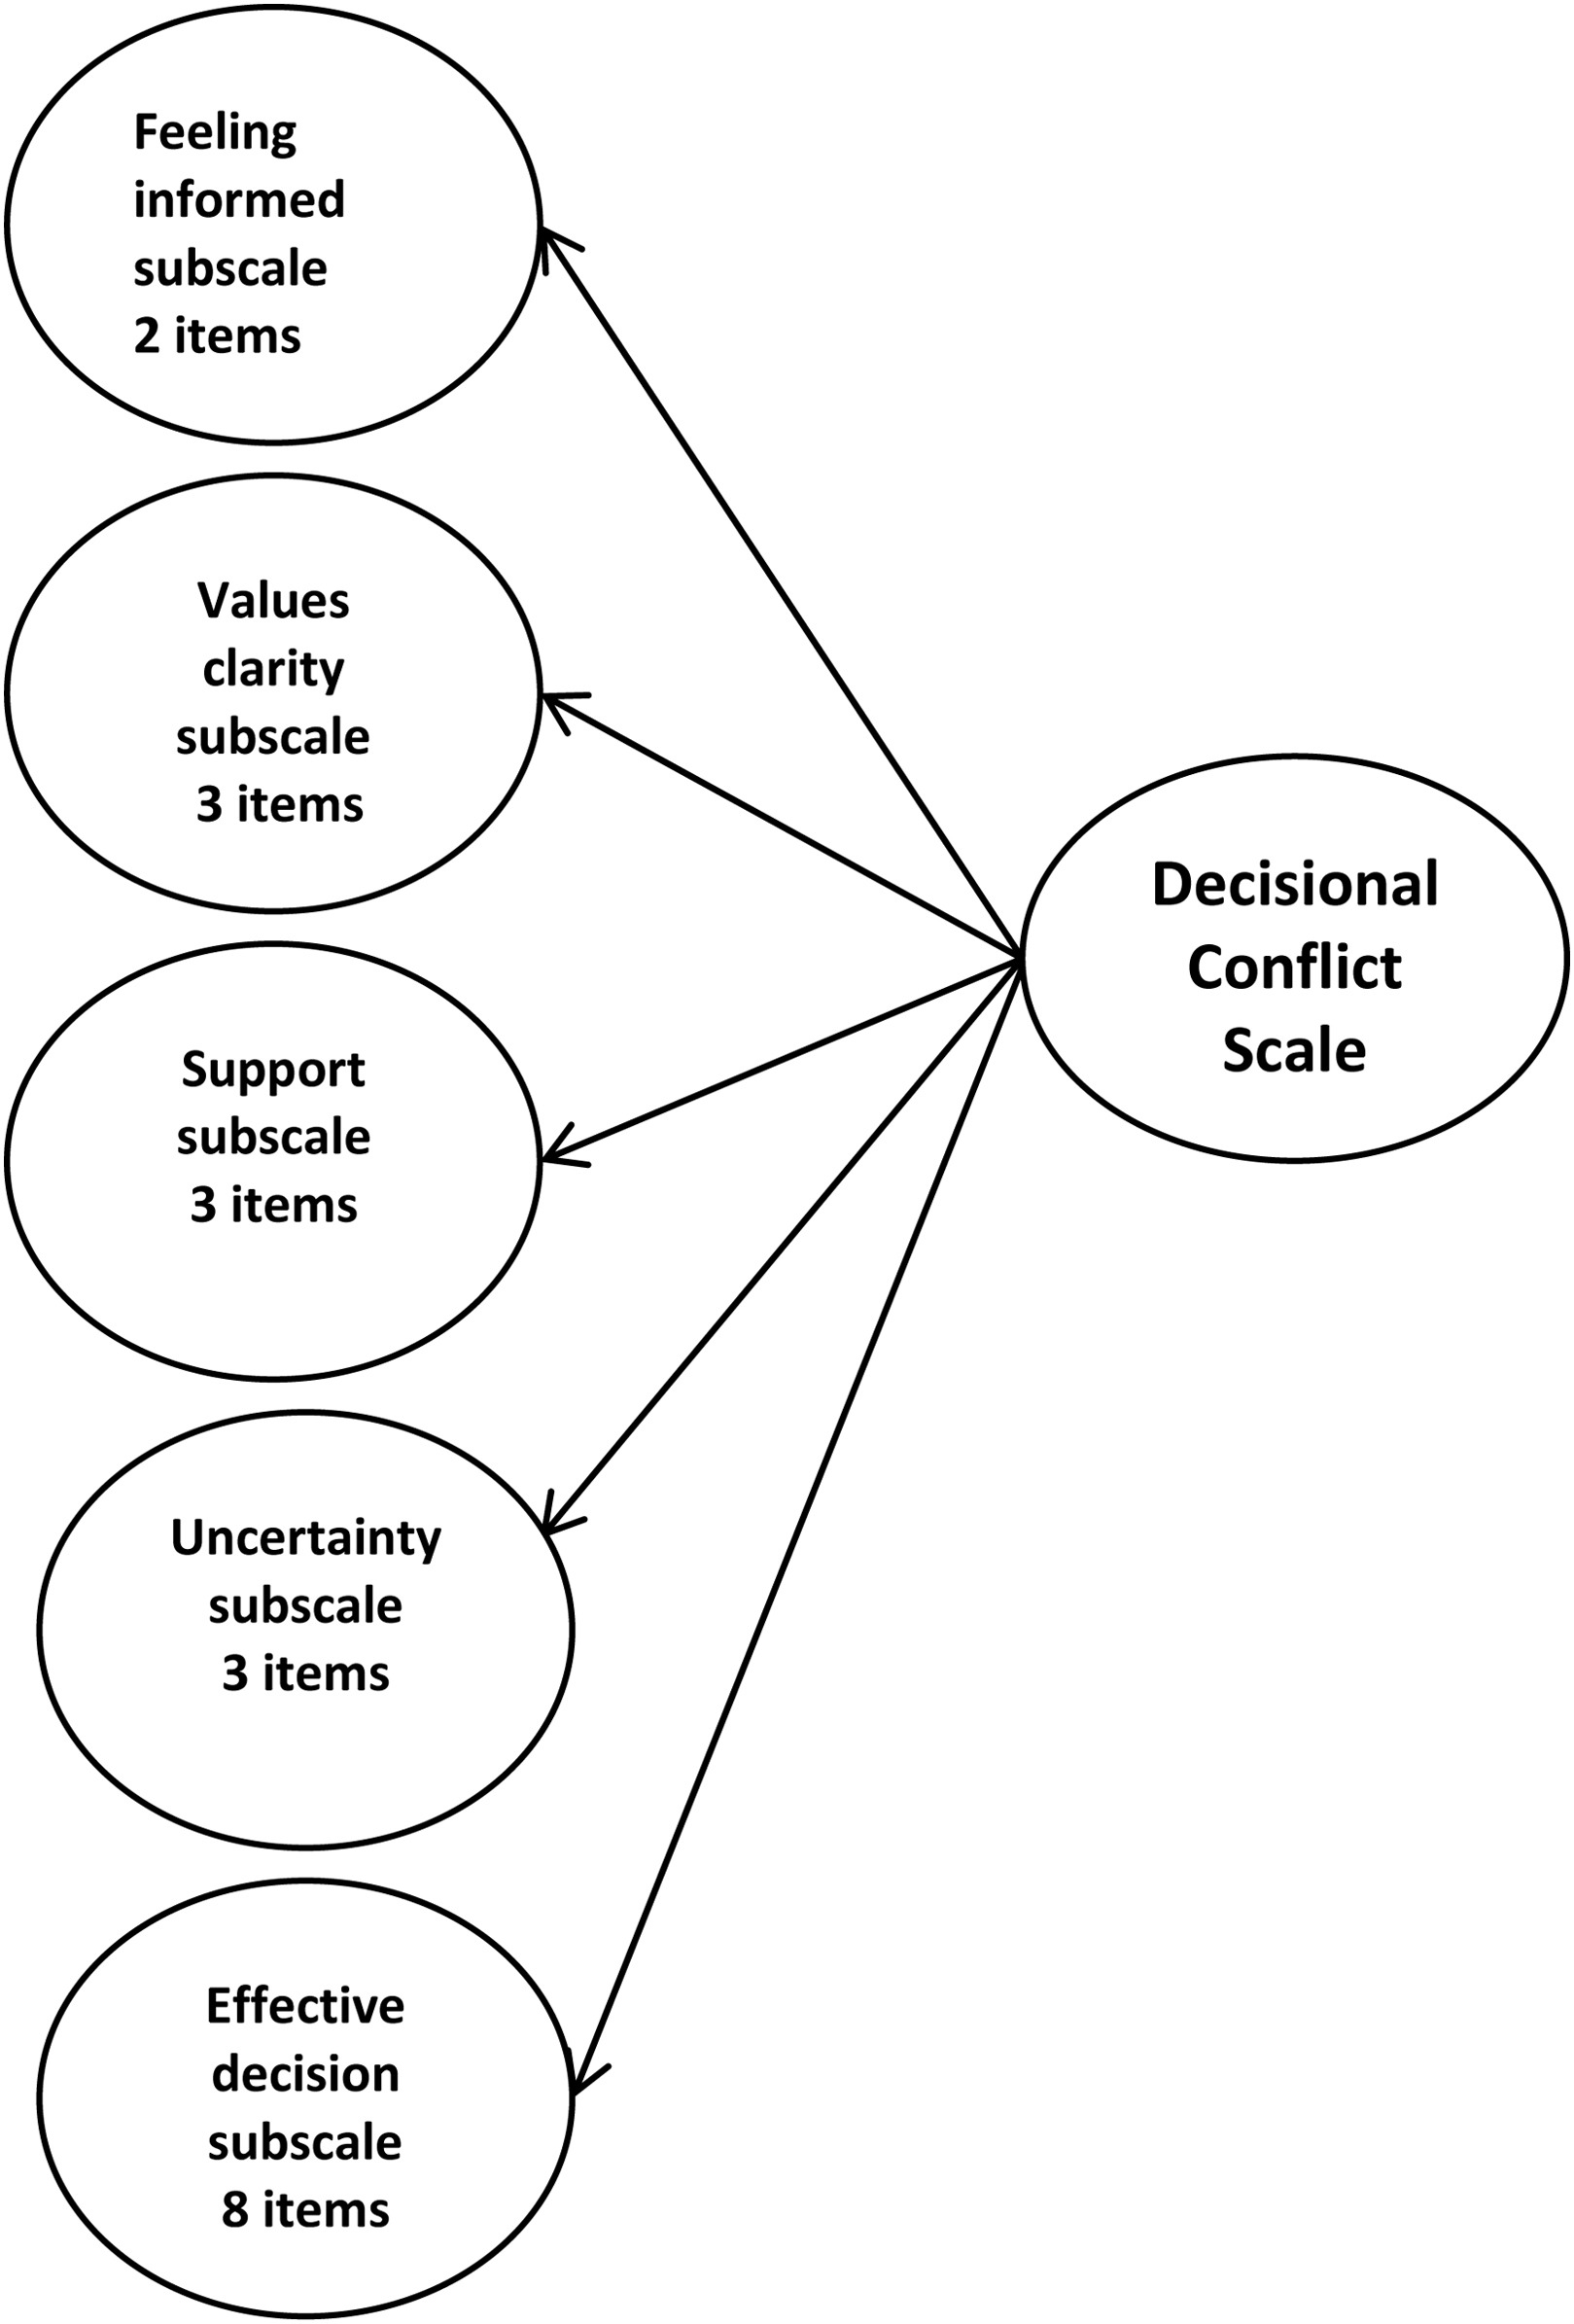 Dyadic Validity Of The Decisional Conflict Scale Common Patient Physician Measures Of Patient